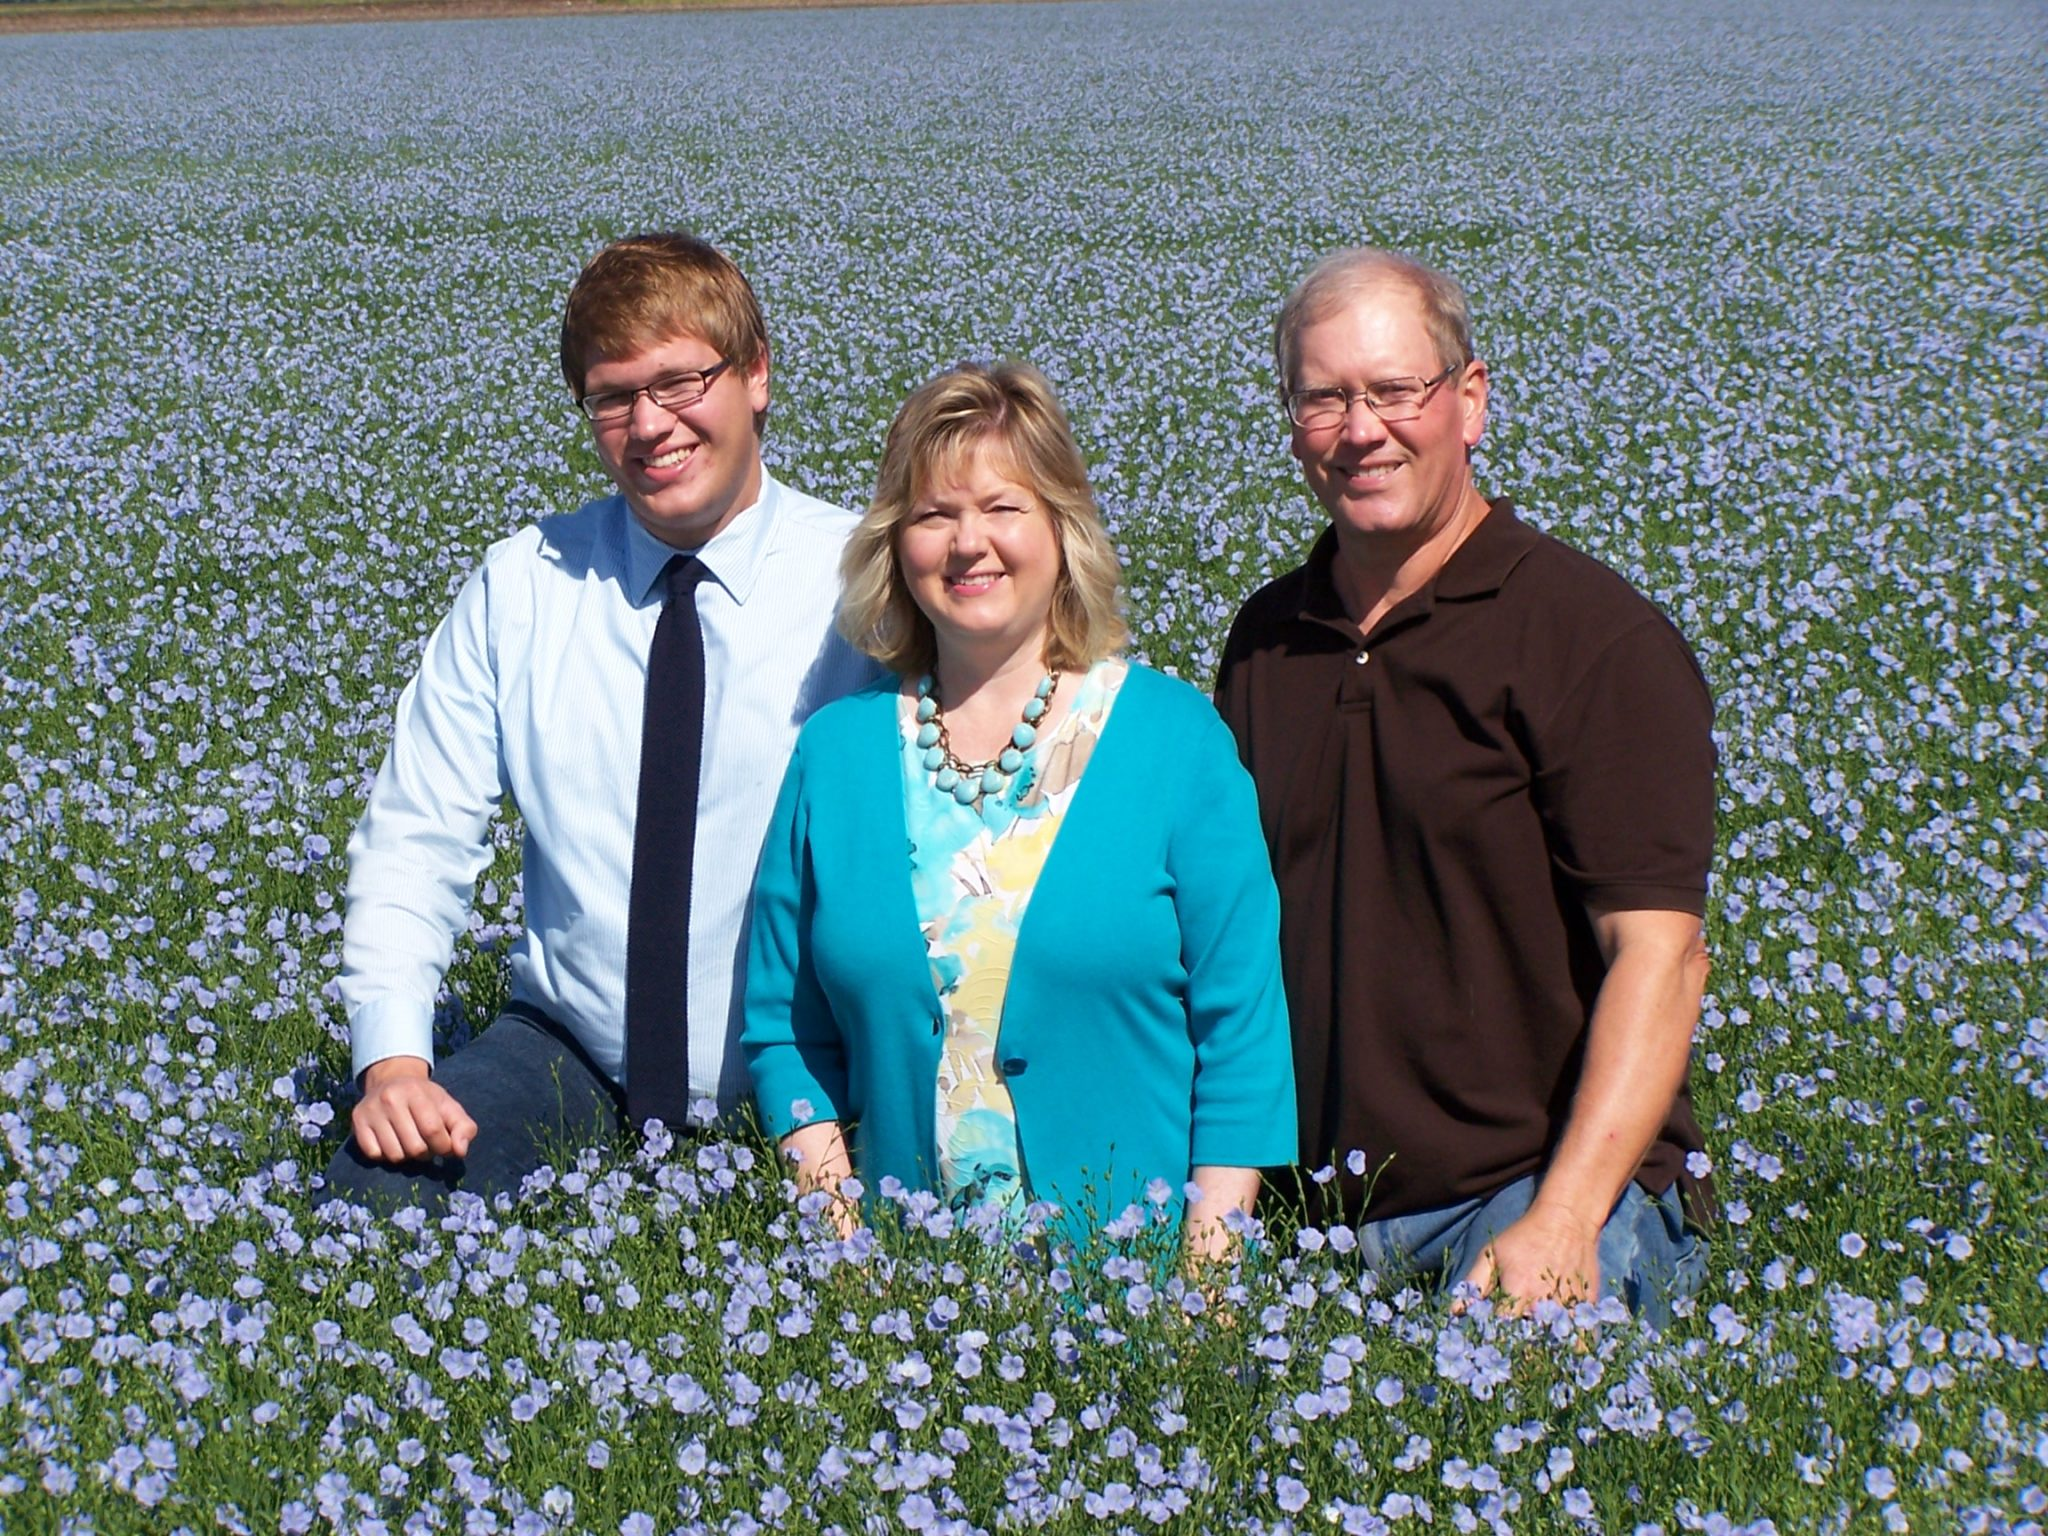 Justin, Esther and Mark Hylden in blooming flax field